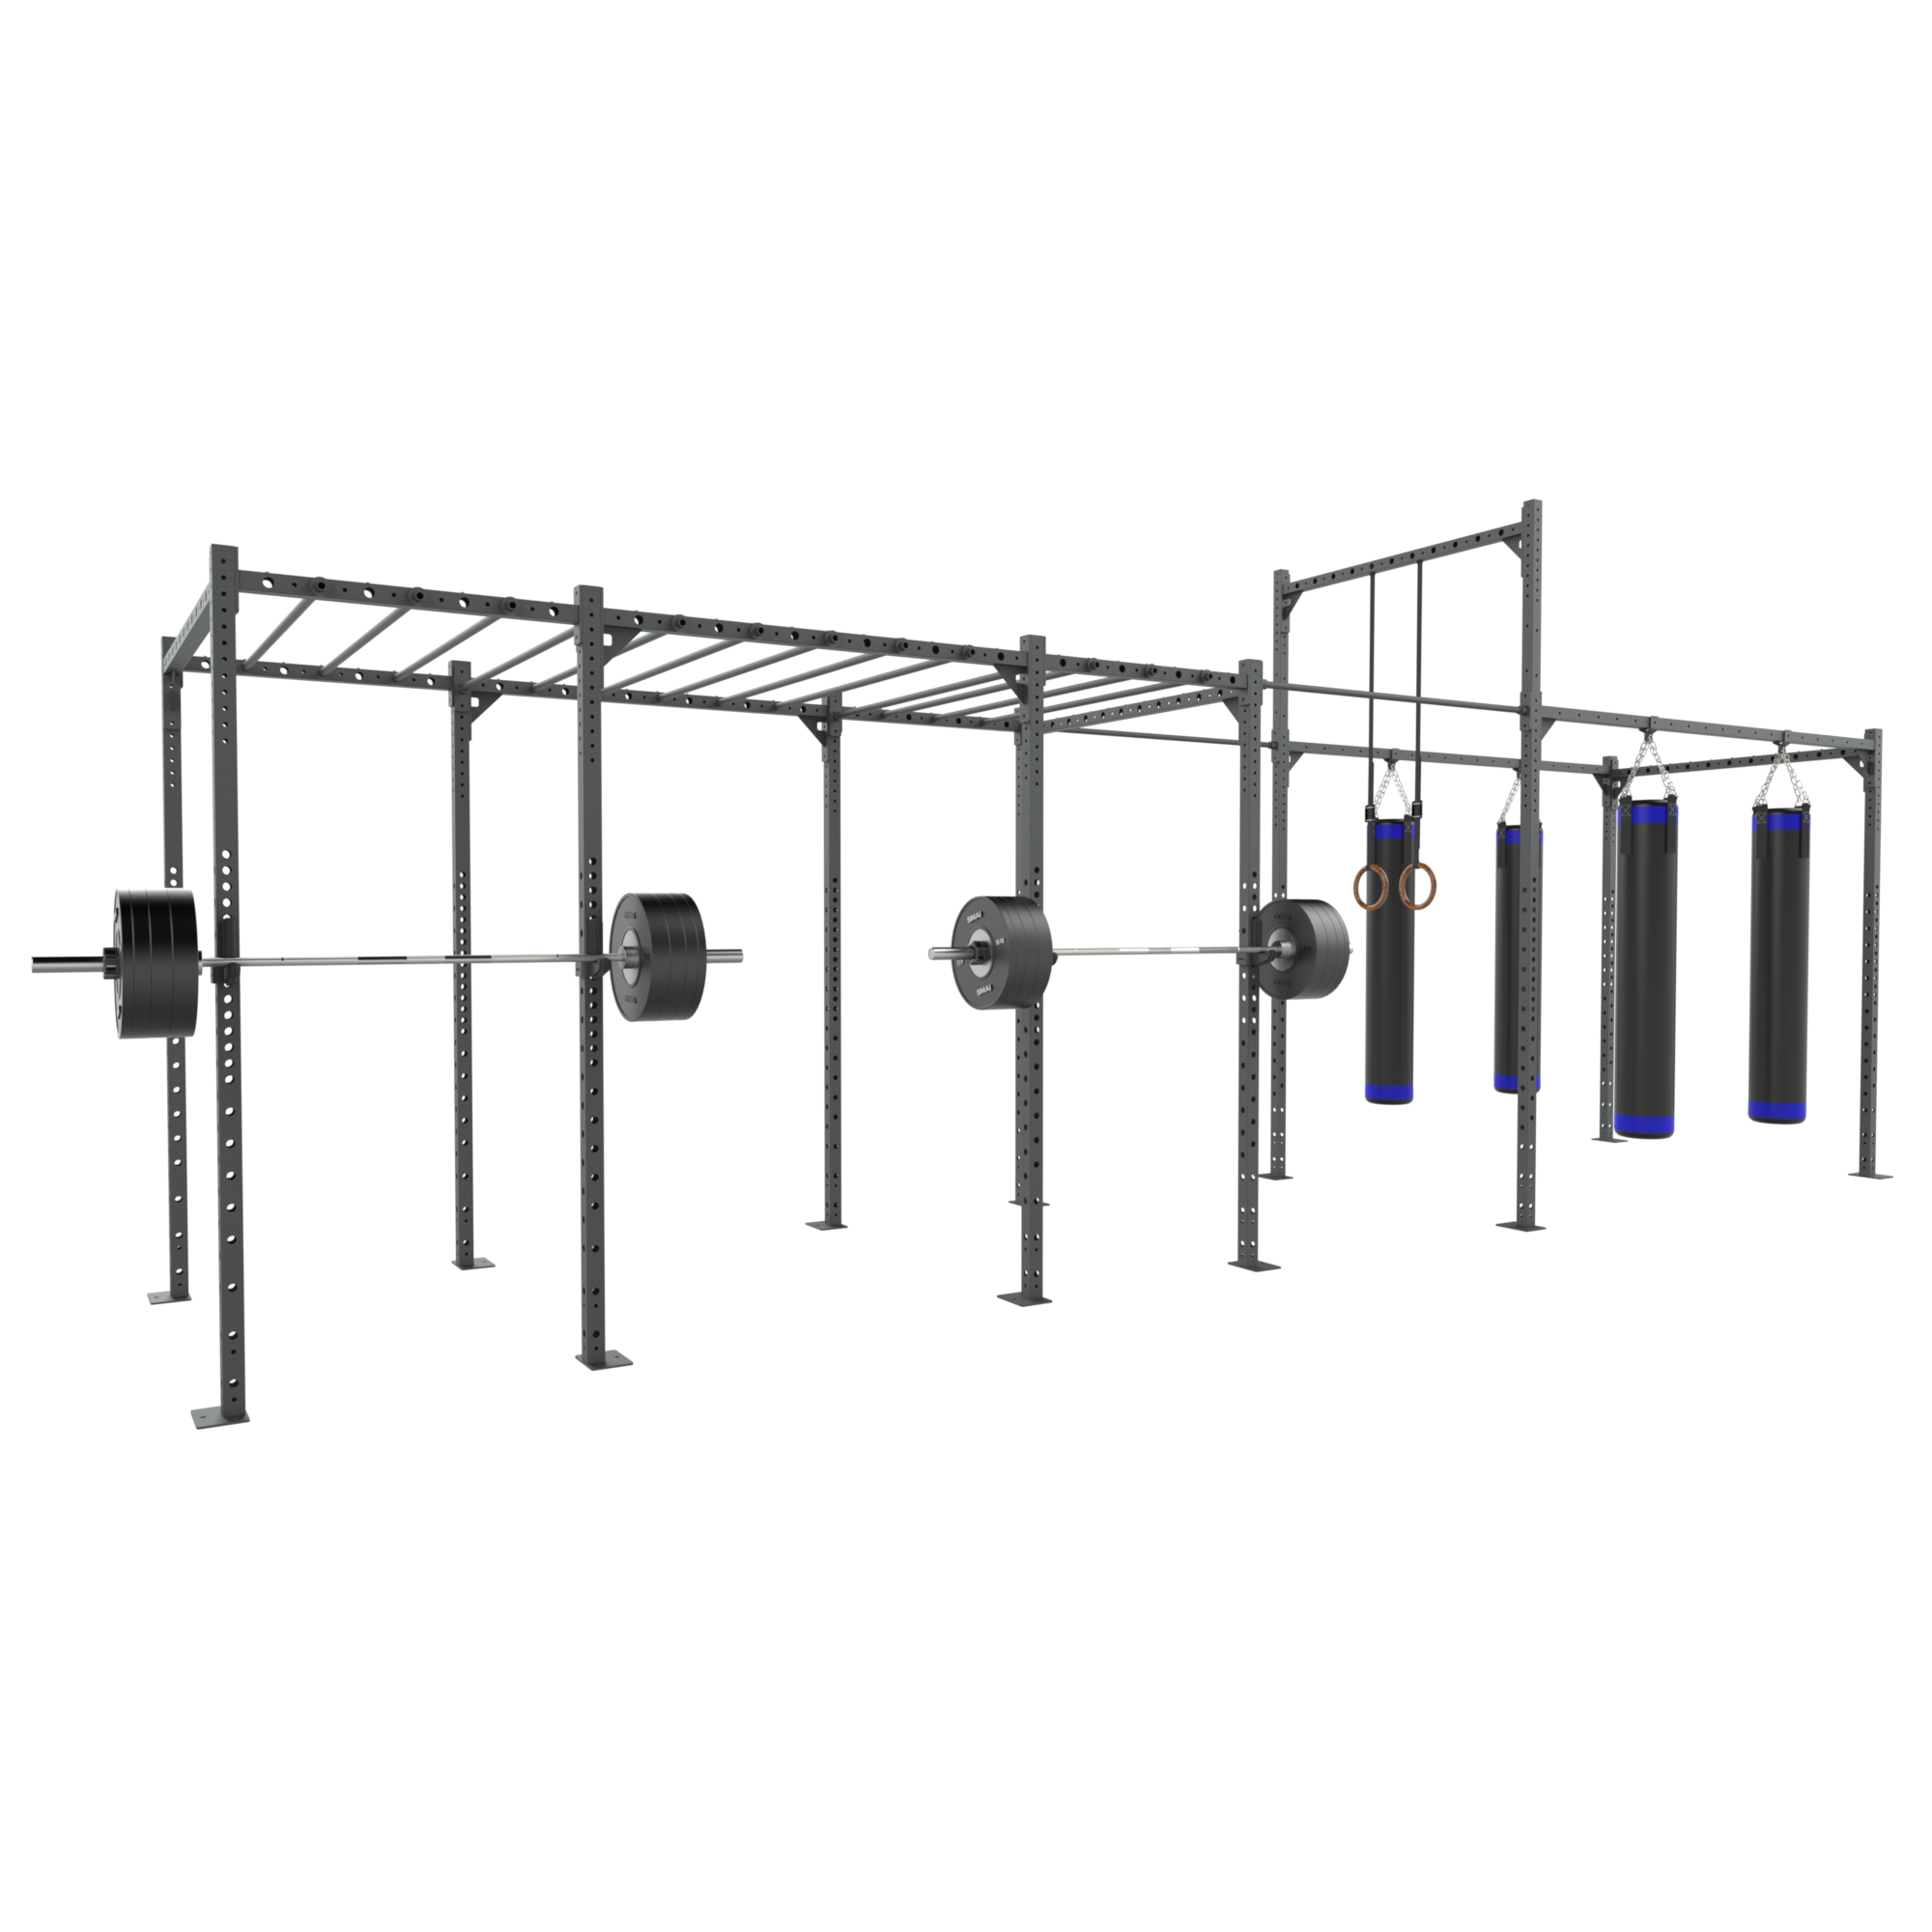 Rig - 4 Squat Cells with Boxing Training Hub